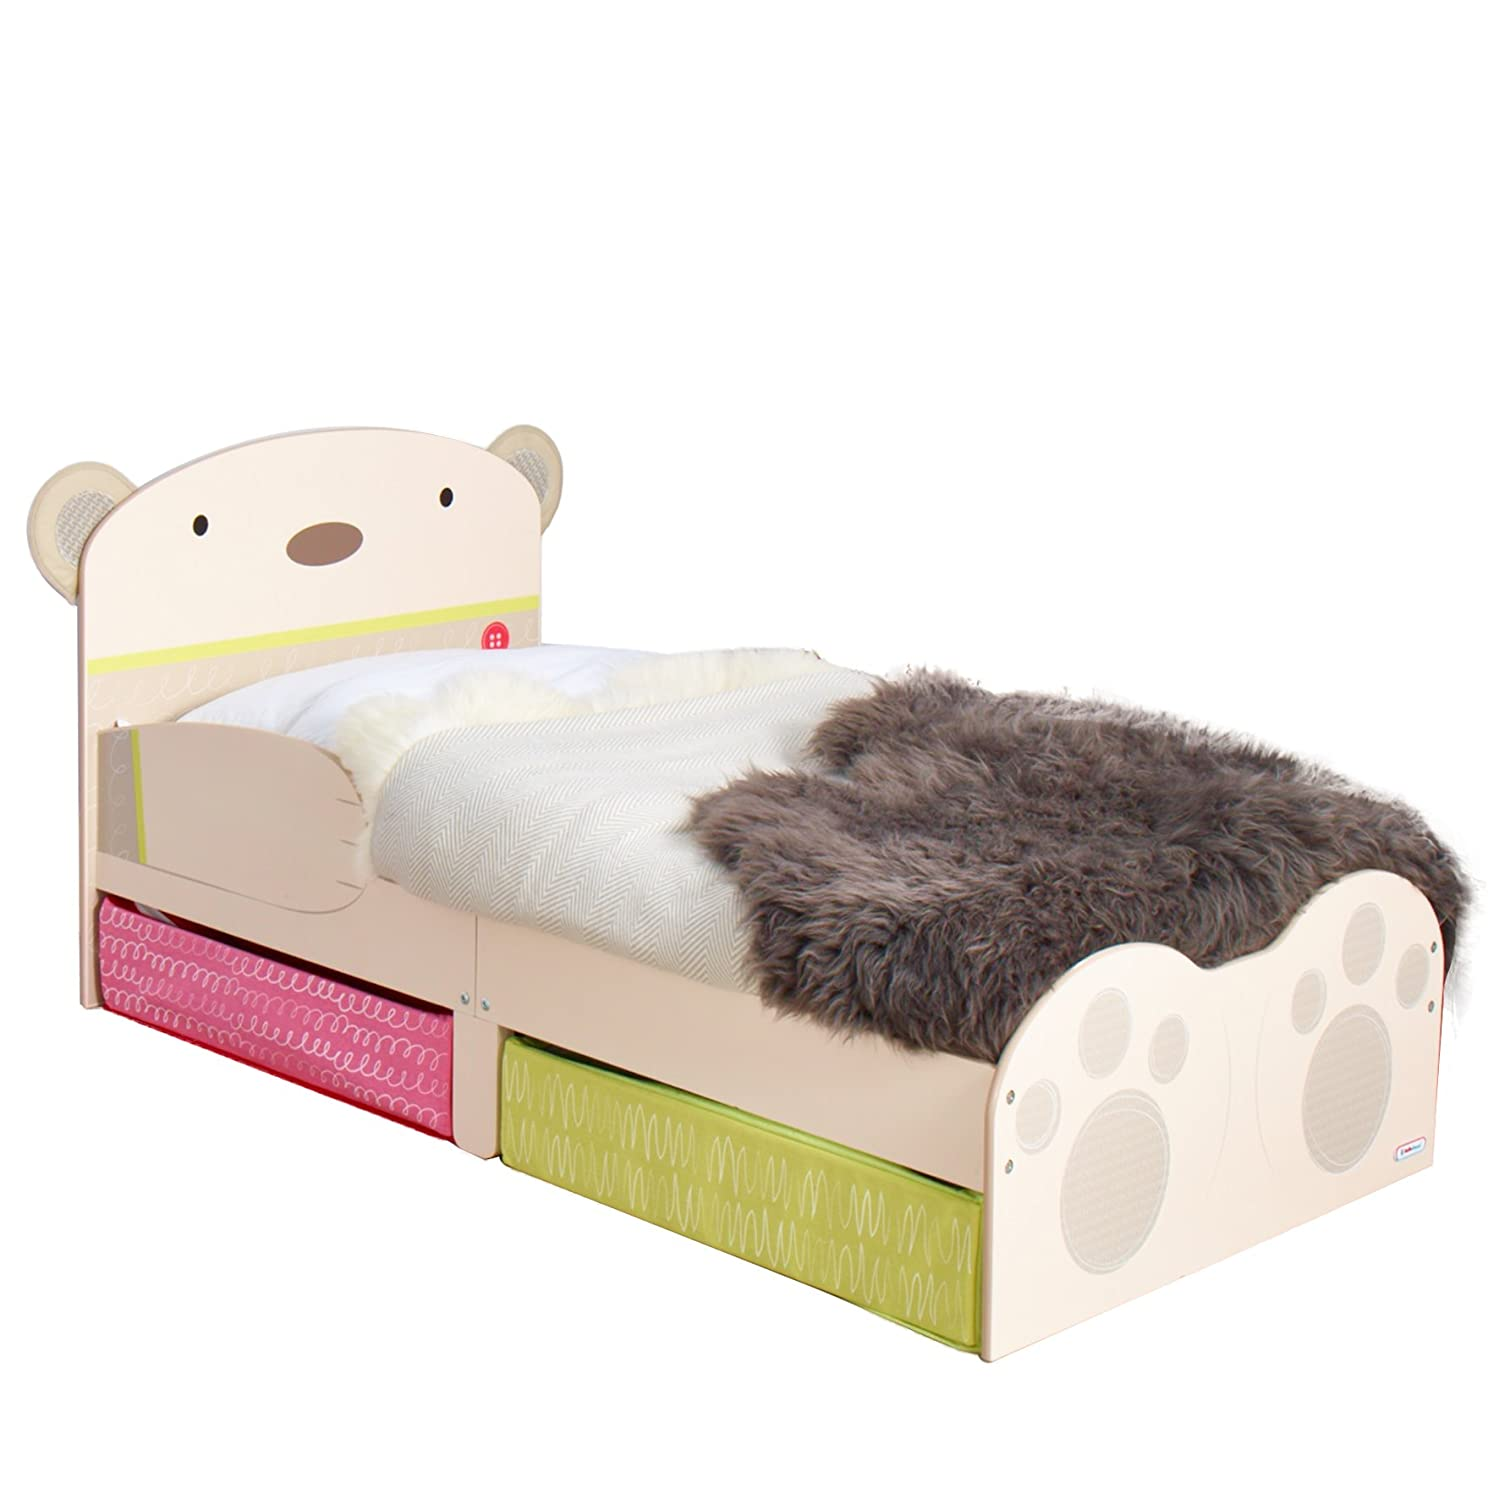 BearHug Kids Toddler Bed with Underbed Storage by HelloHome Worlds Apart 509SNG01EM